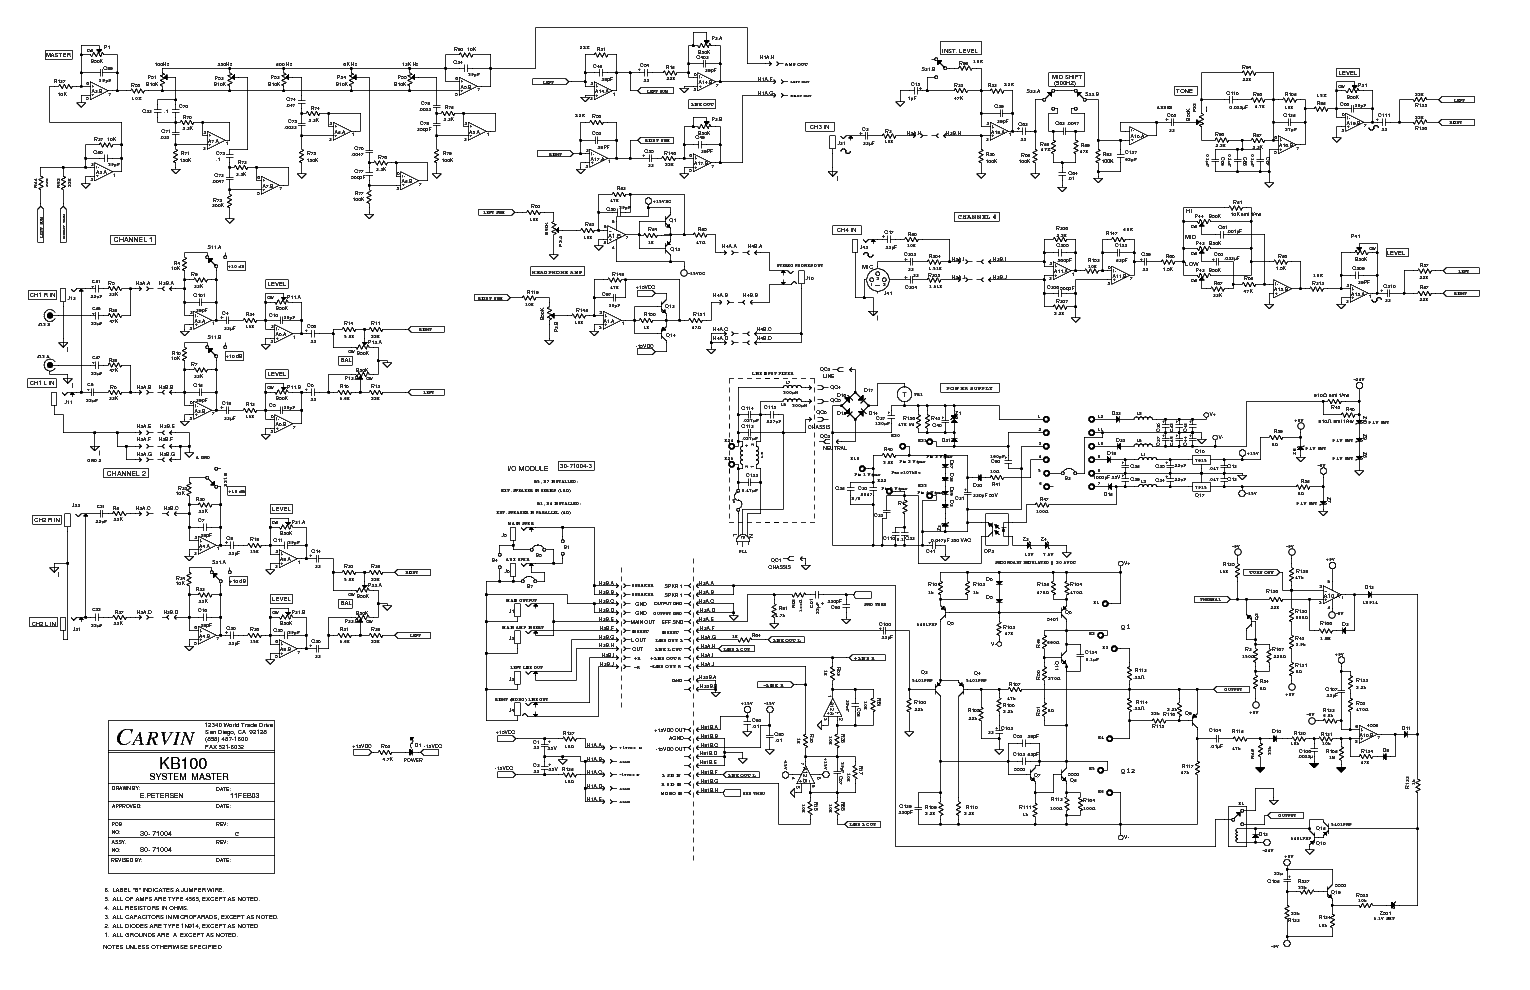 carvin kb100 sch service manual download, schematics ... wiring schematics in series two side by side carvin wiring schematics #10